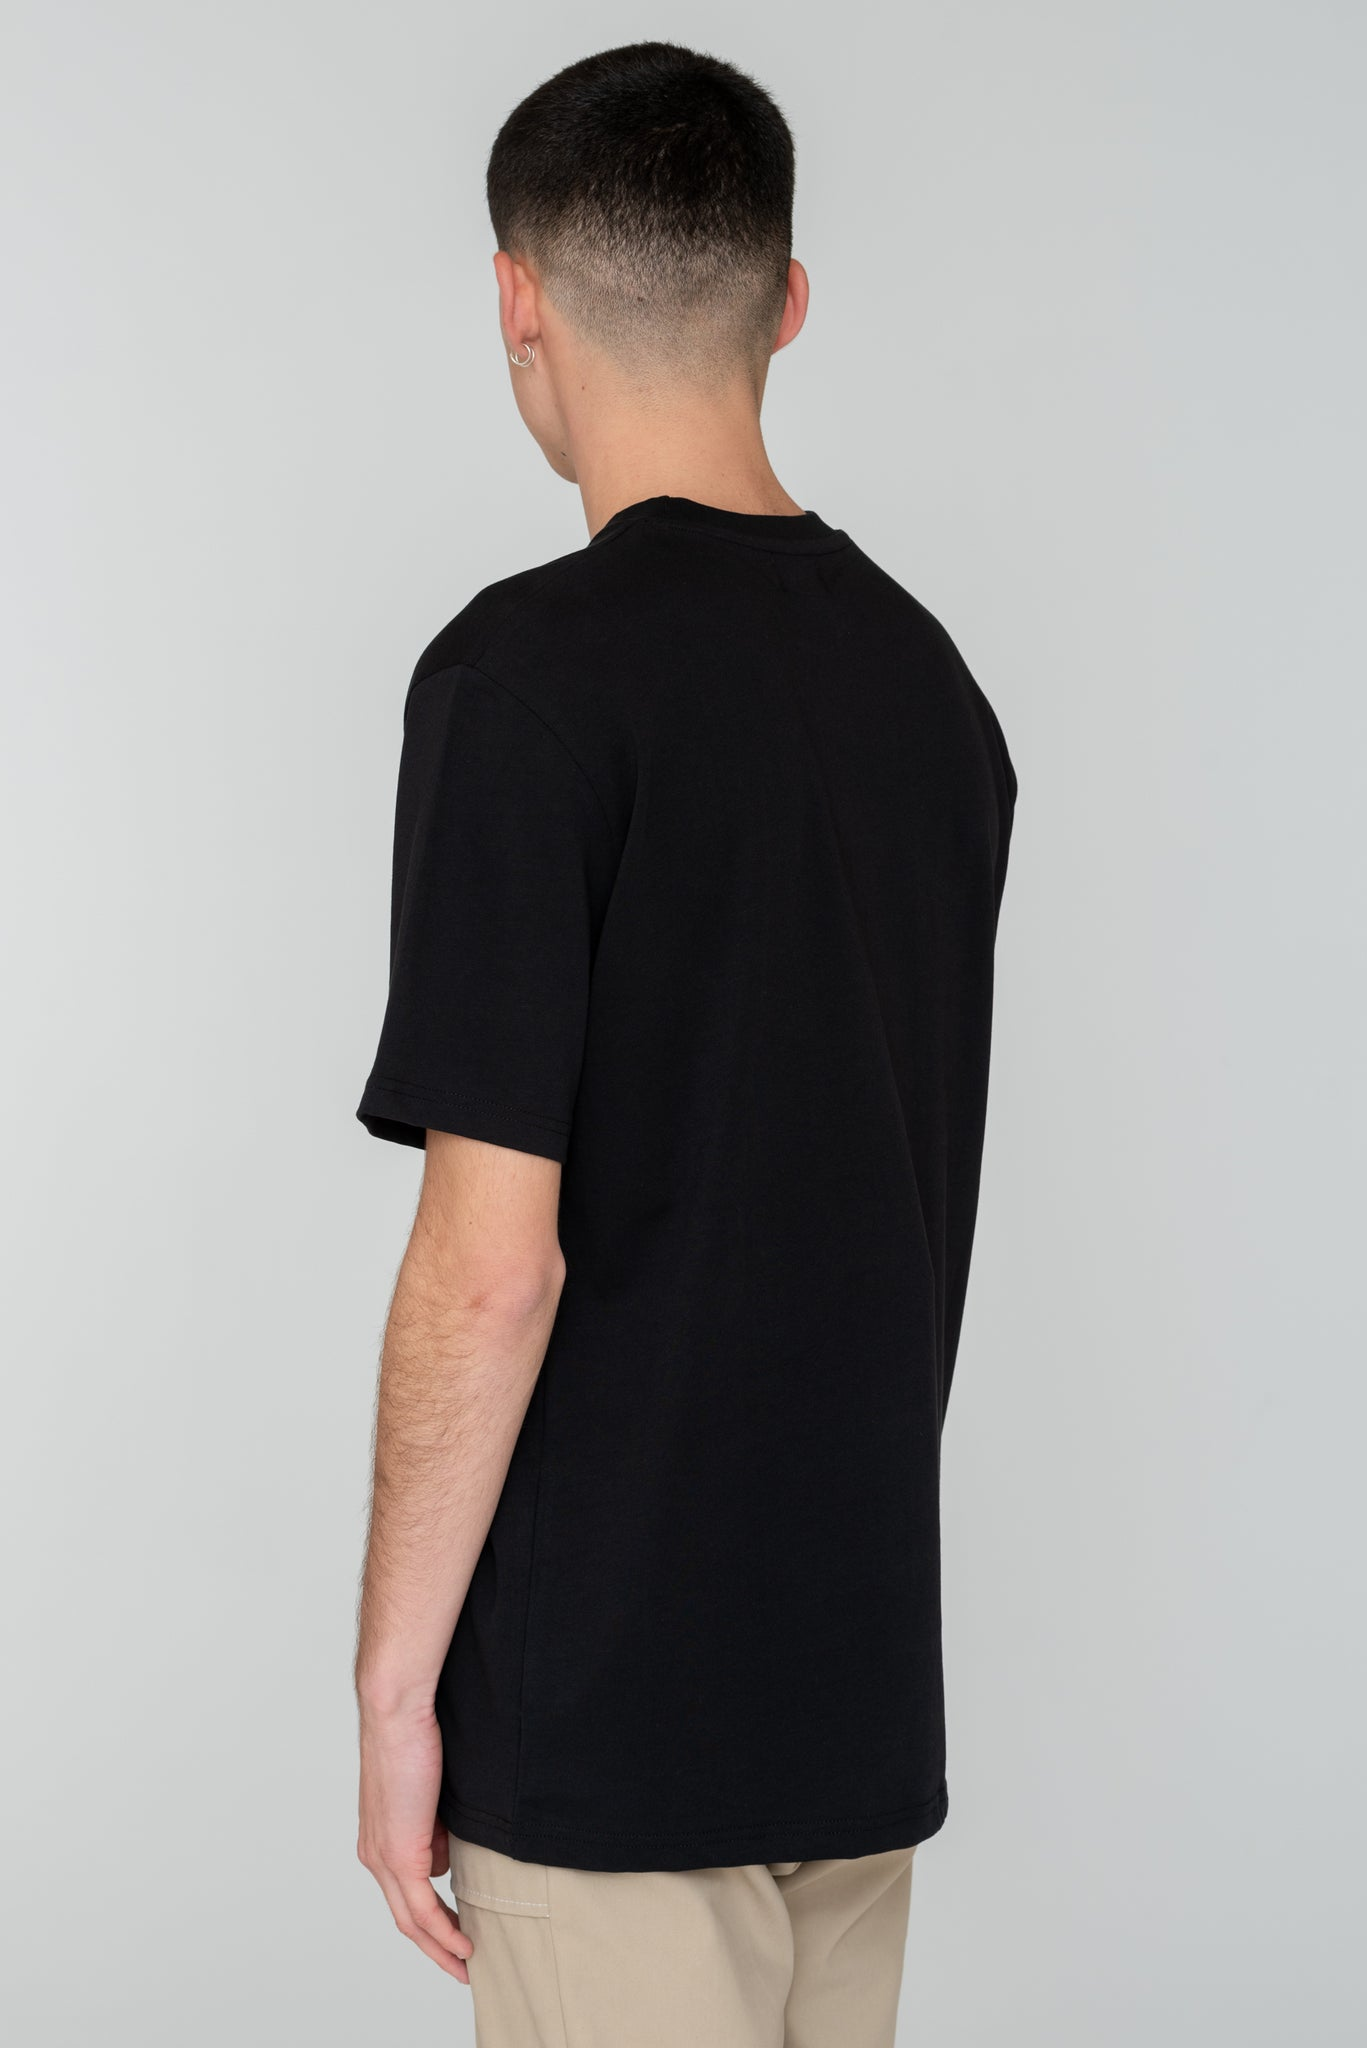 Troy Multi Logo T-shirt Black - Arte Antwerp